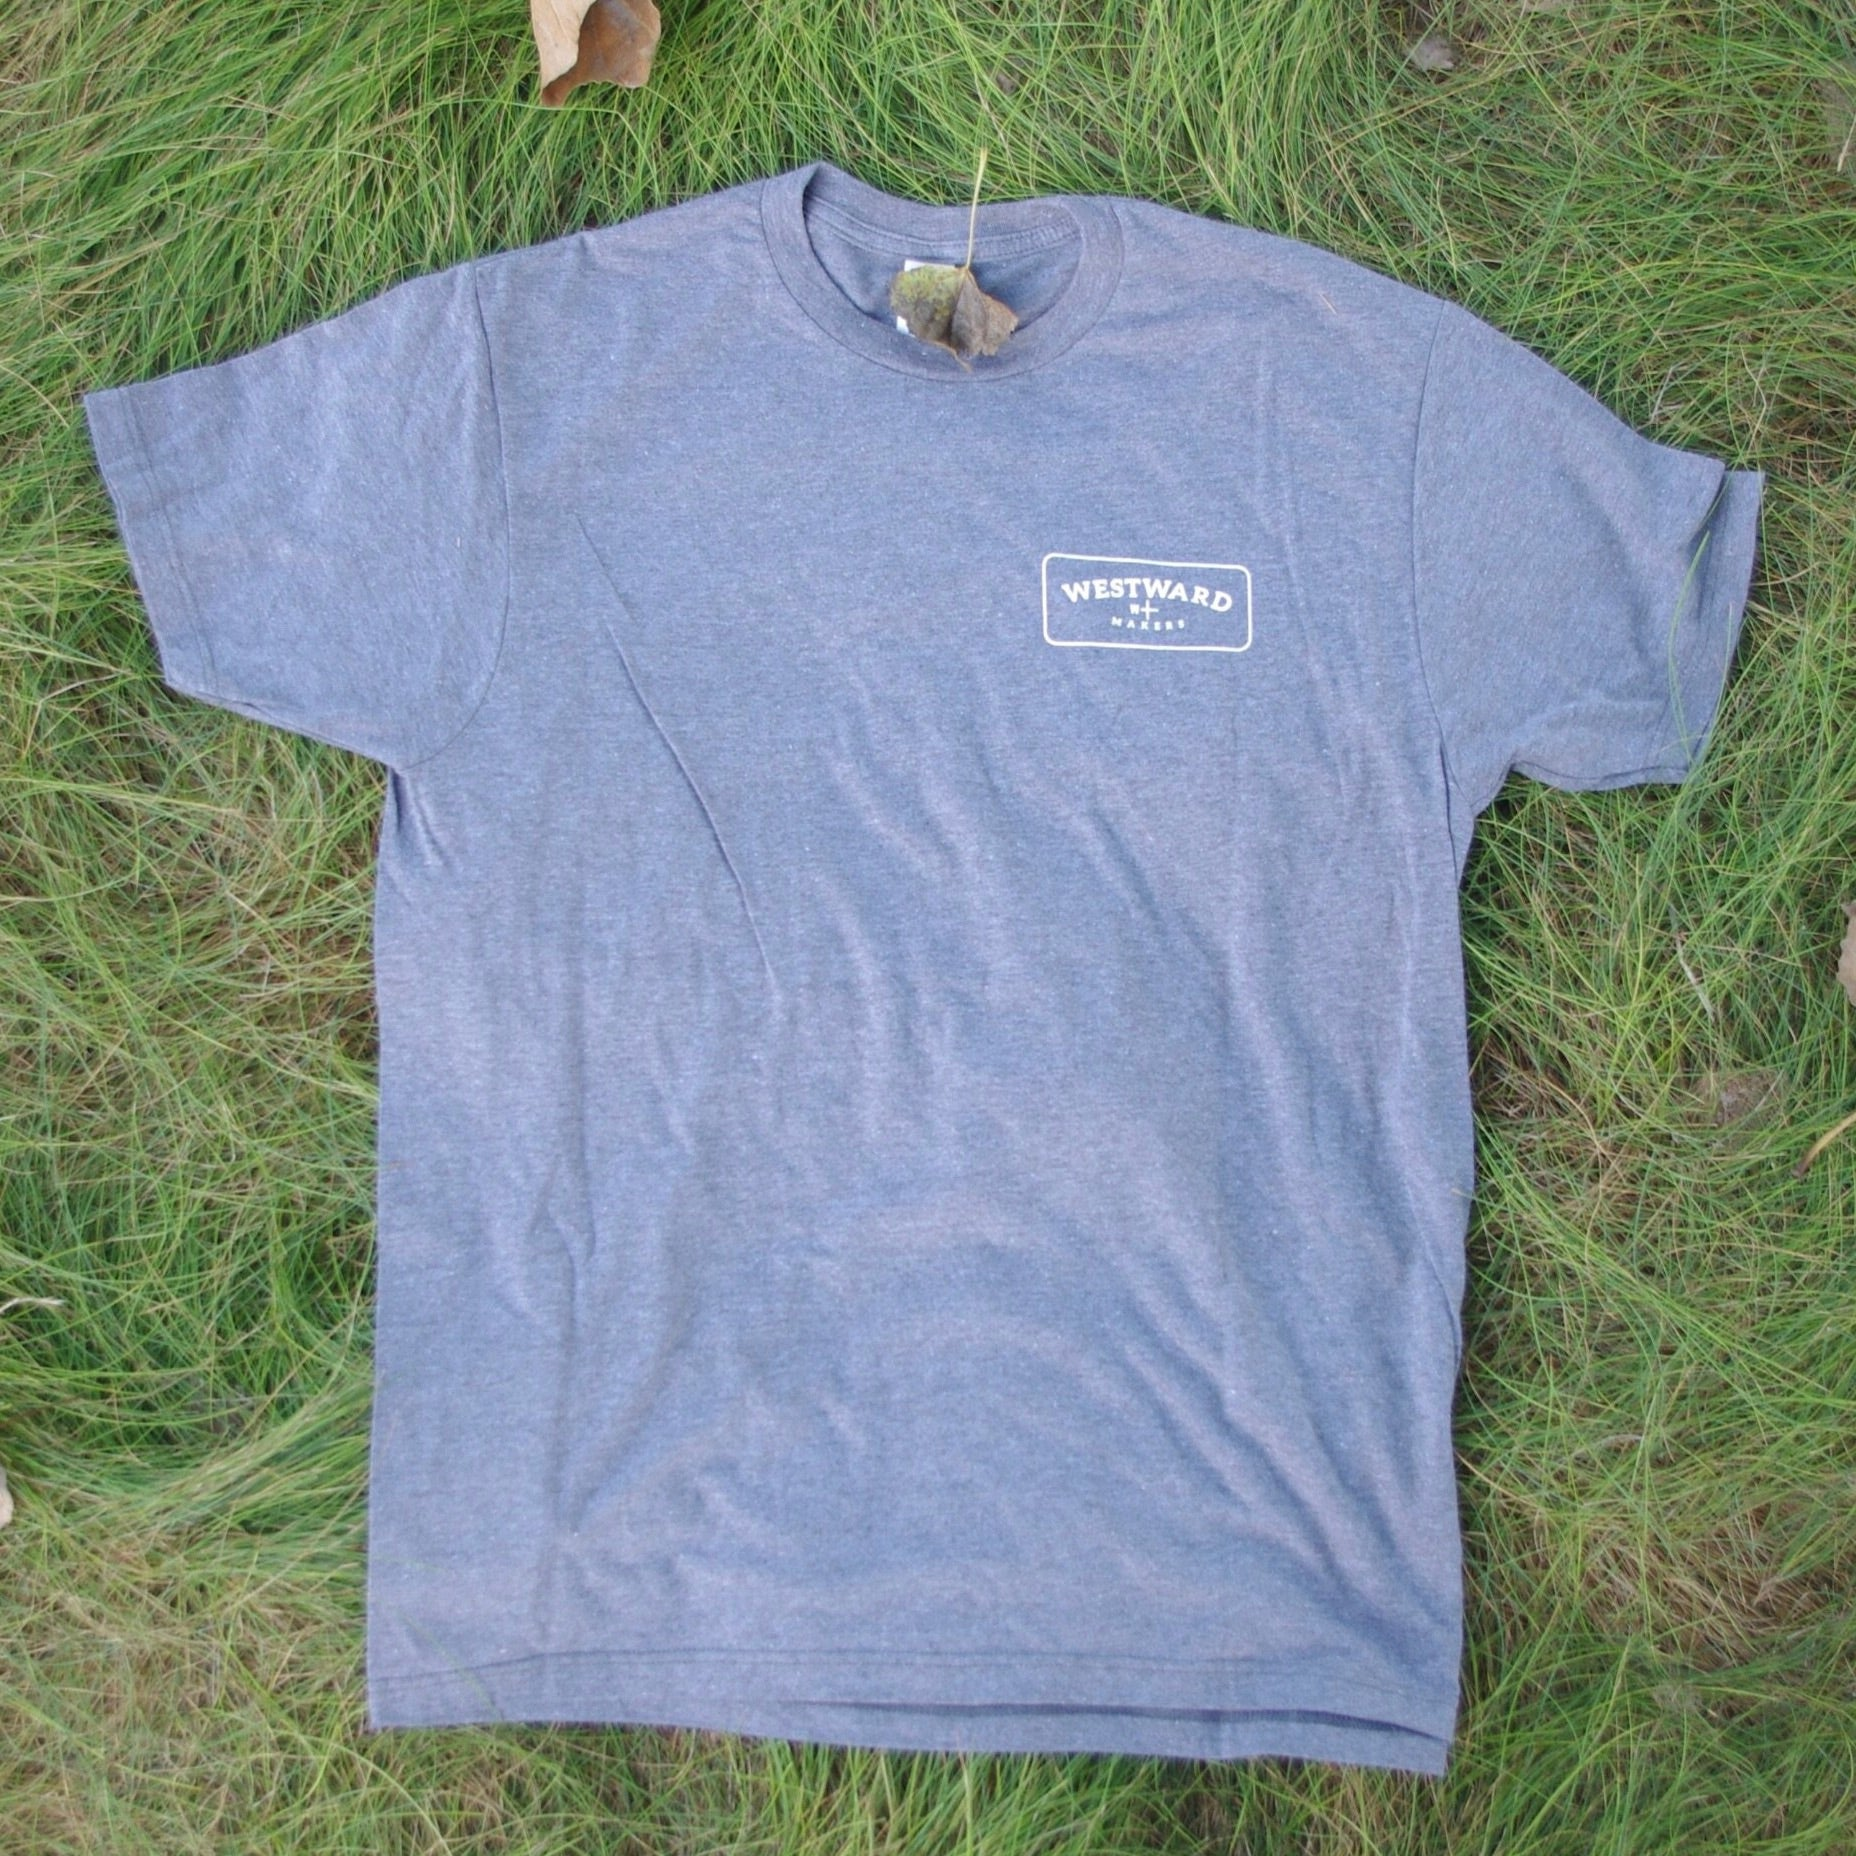 Westward Makers Classic Men's T-Shirt Grey with Pocket Logo Design